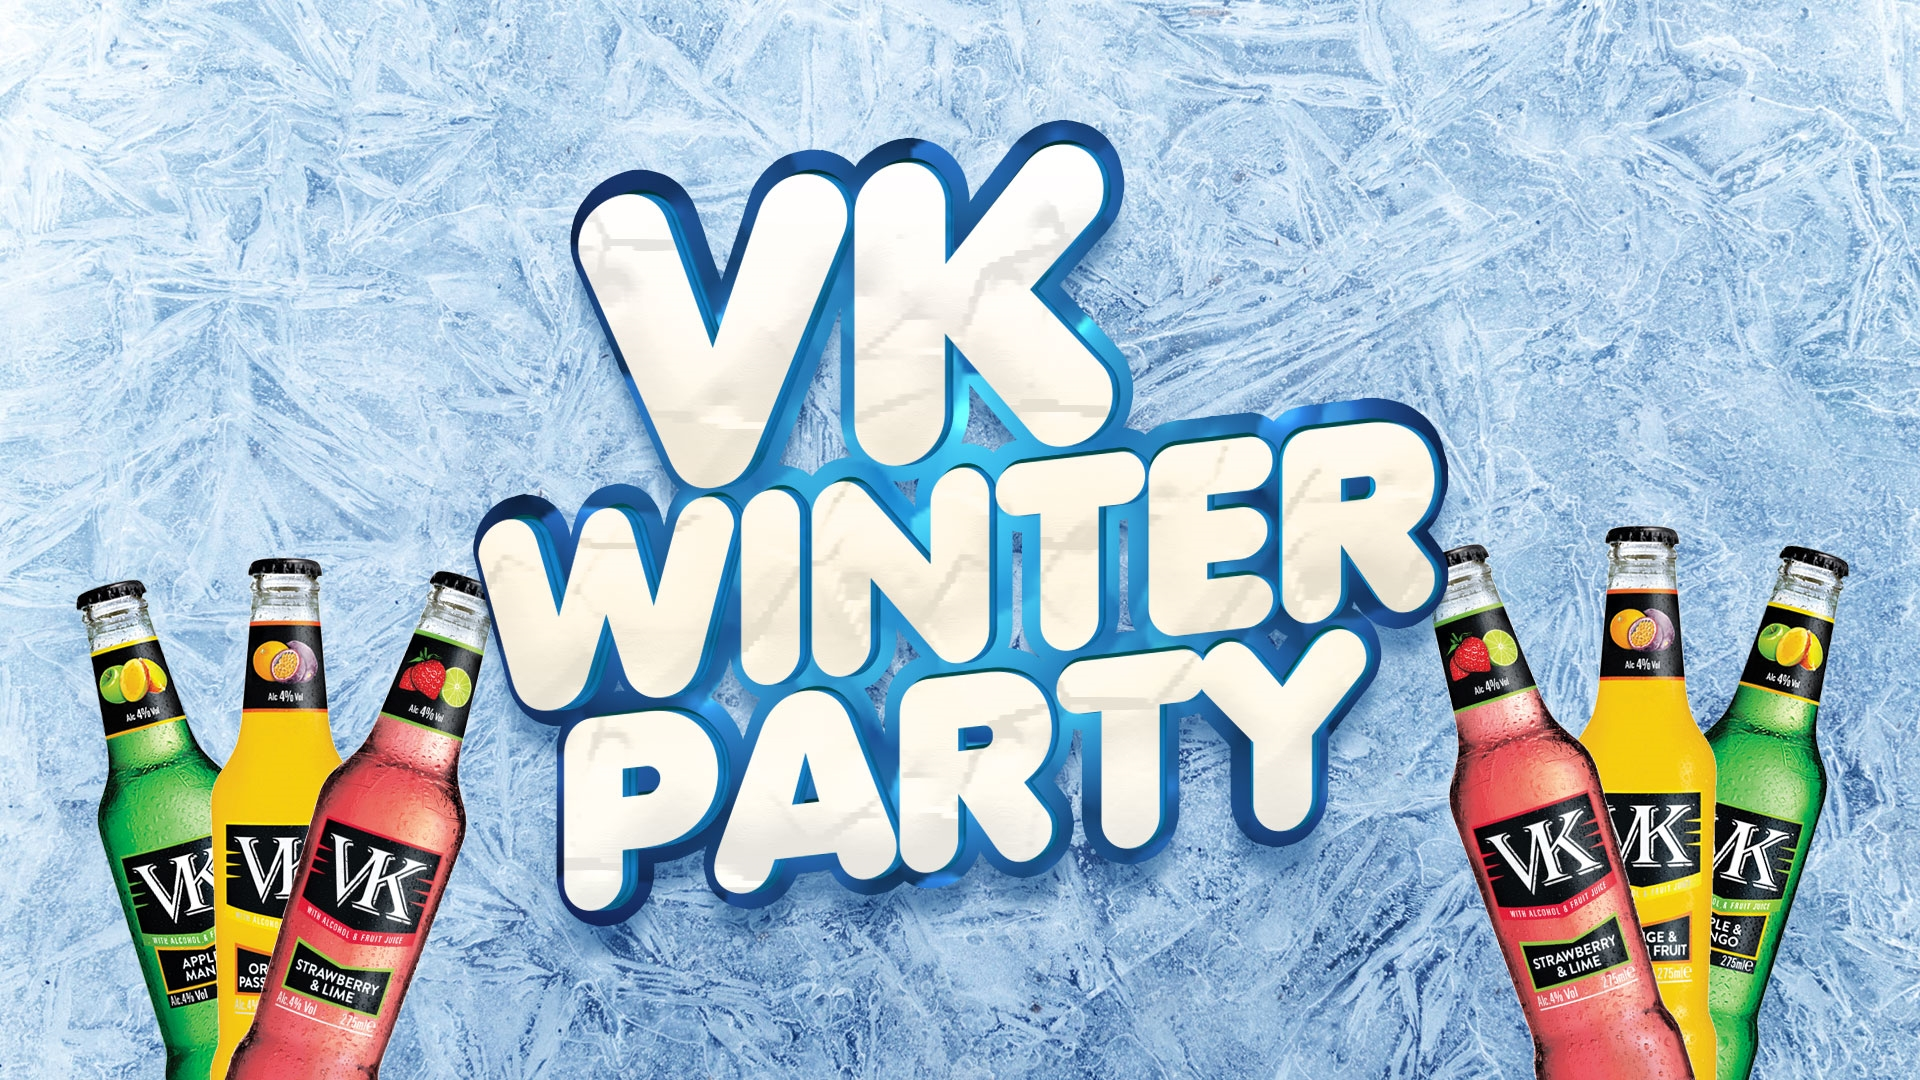 VK Winter Party - £1 Super Early Bird Tickets - £2 VK Flavours